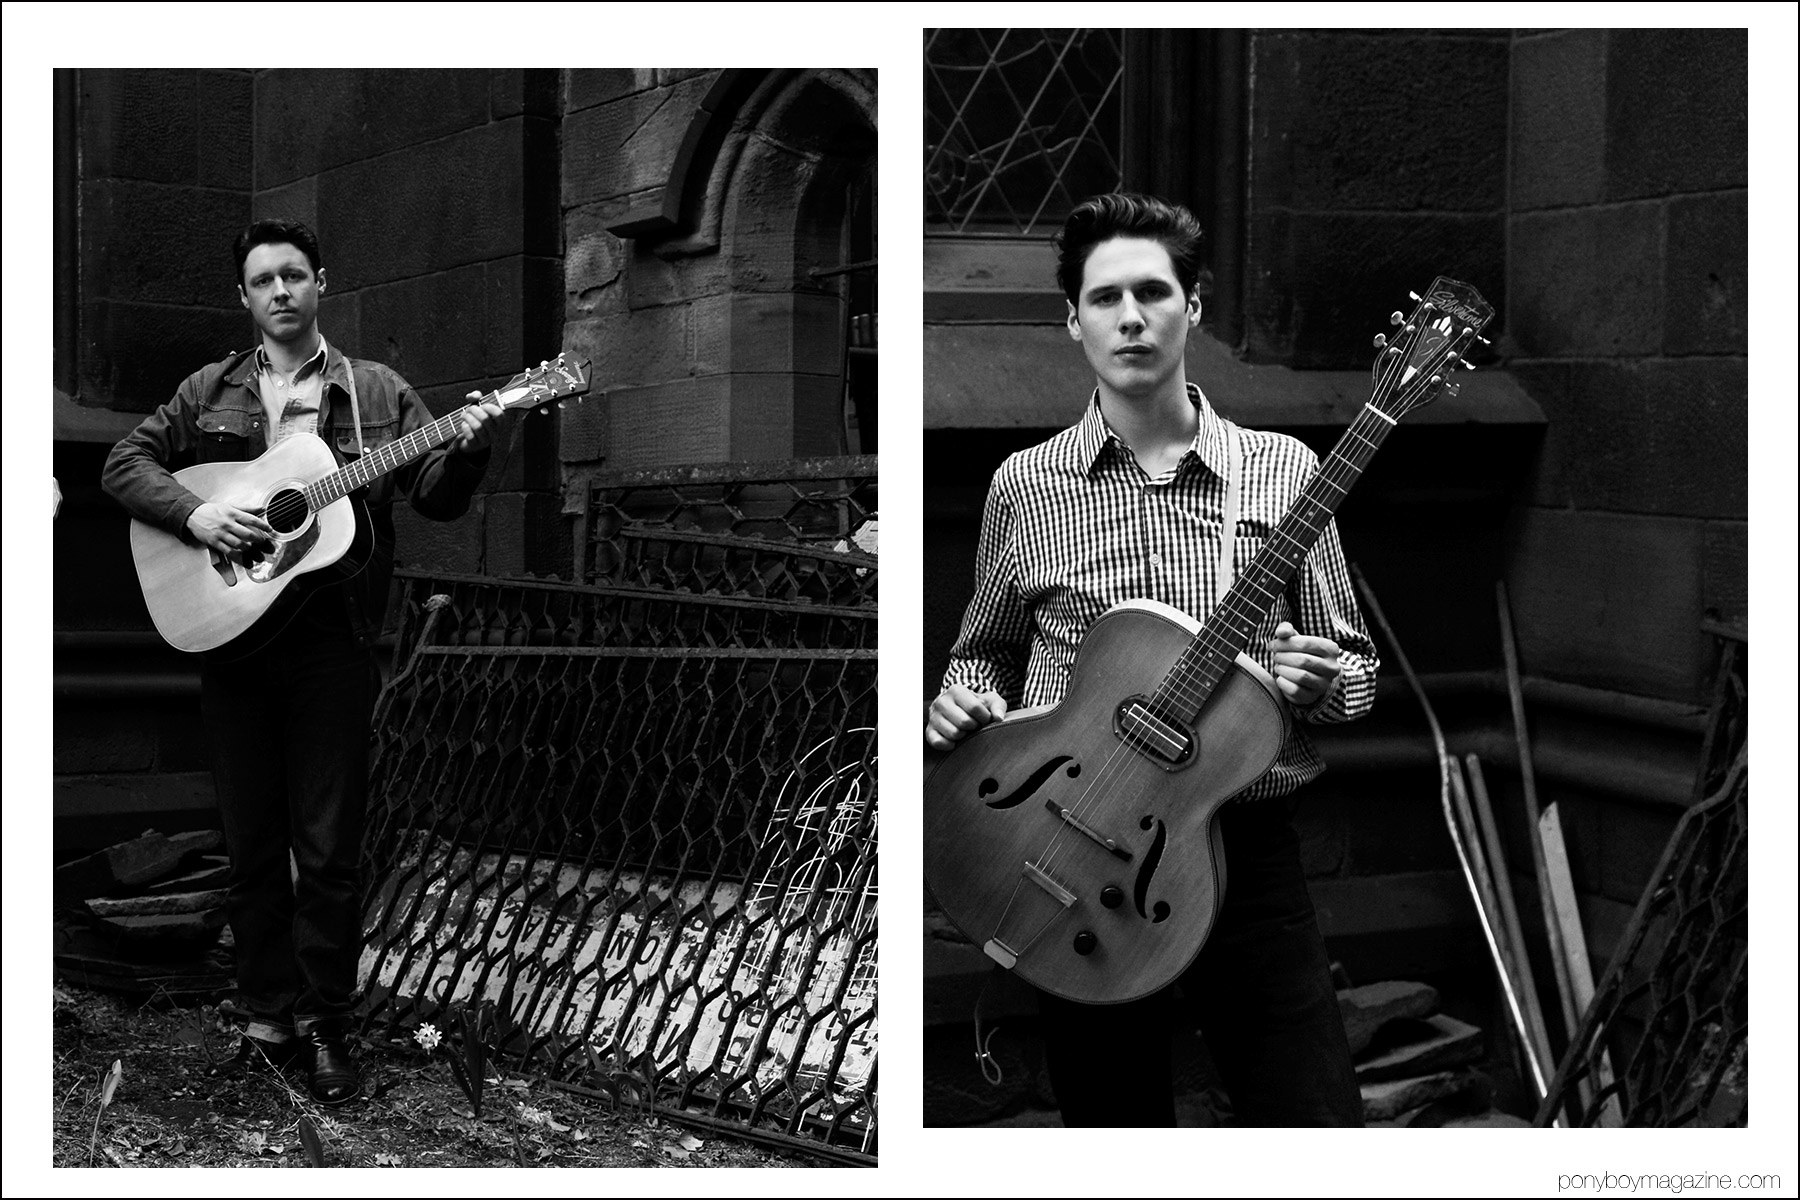 Musical duo the Cactus Blossoms, photographed by Alexander Thompson for Ponyboy magazine in New York.